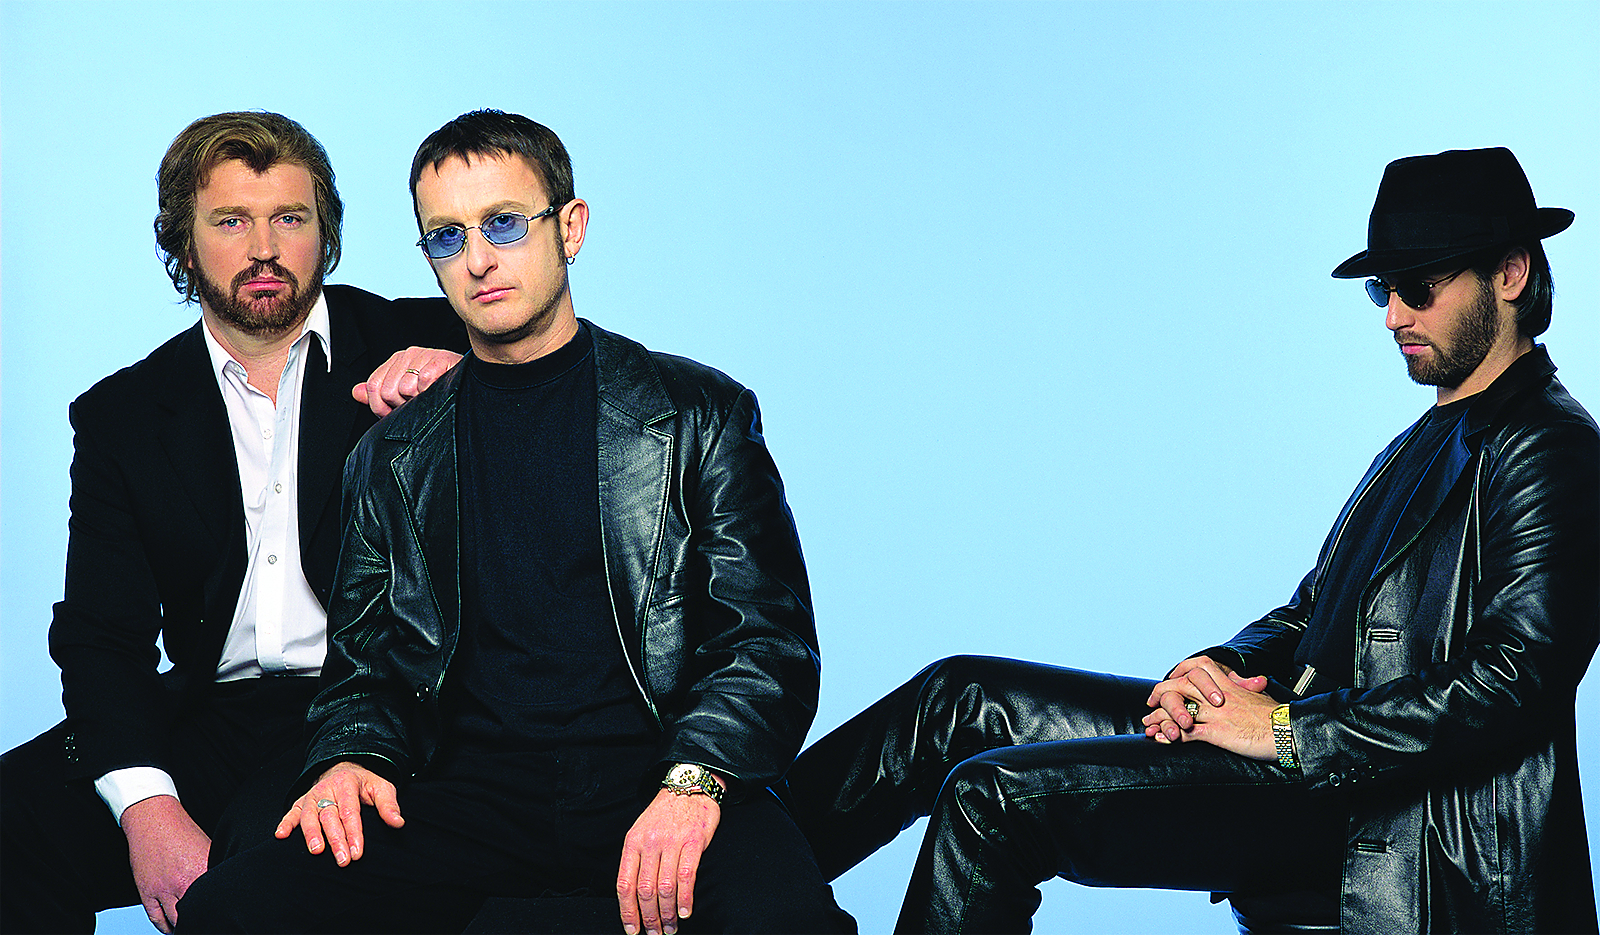 bee gees tribute band mines decades of hits